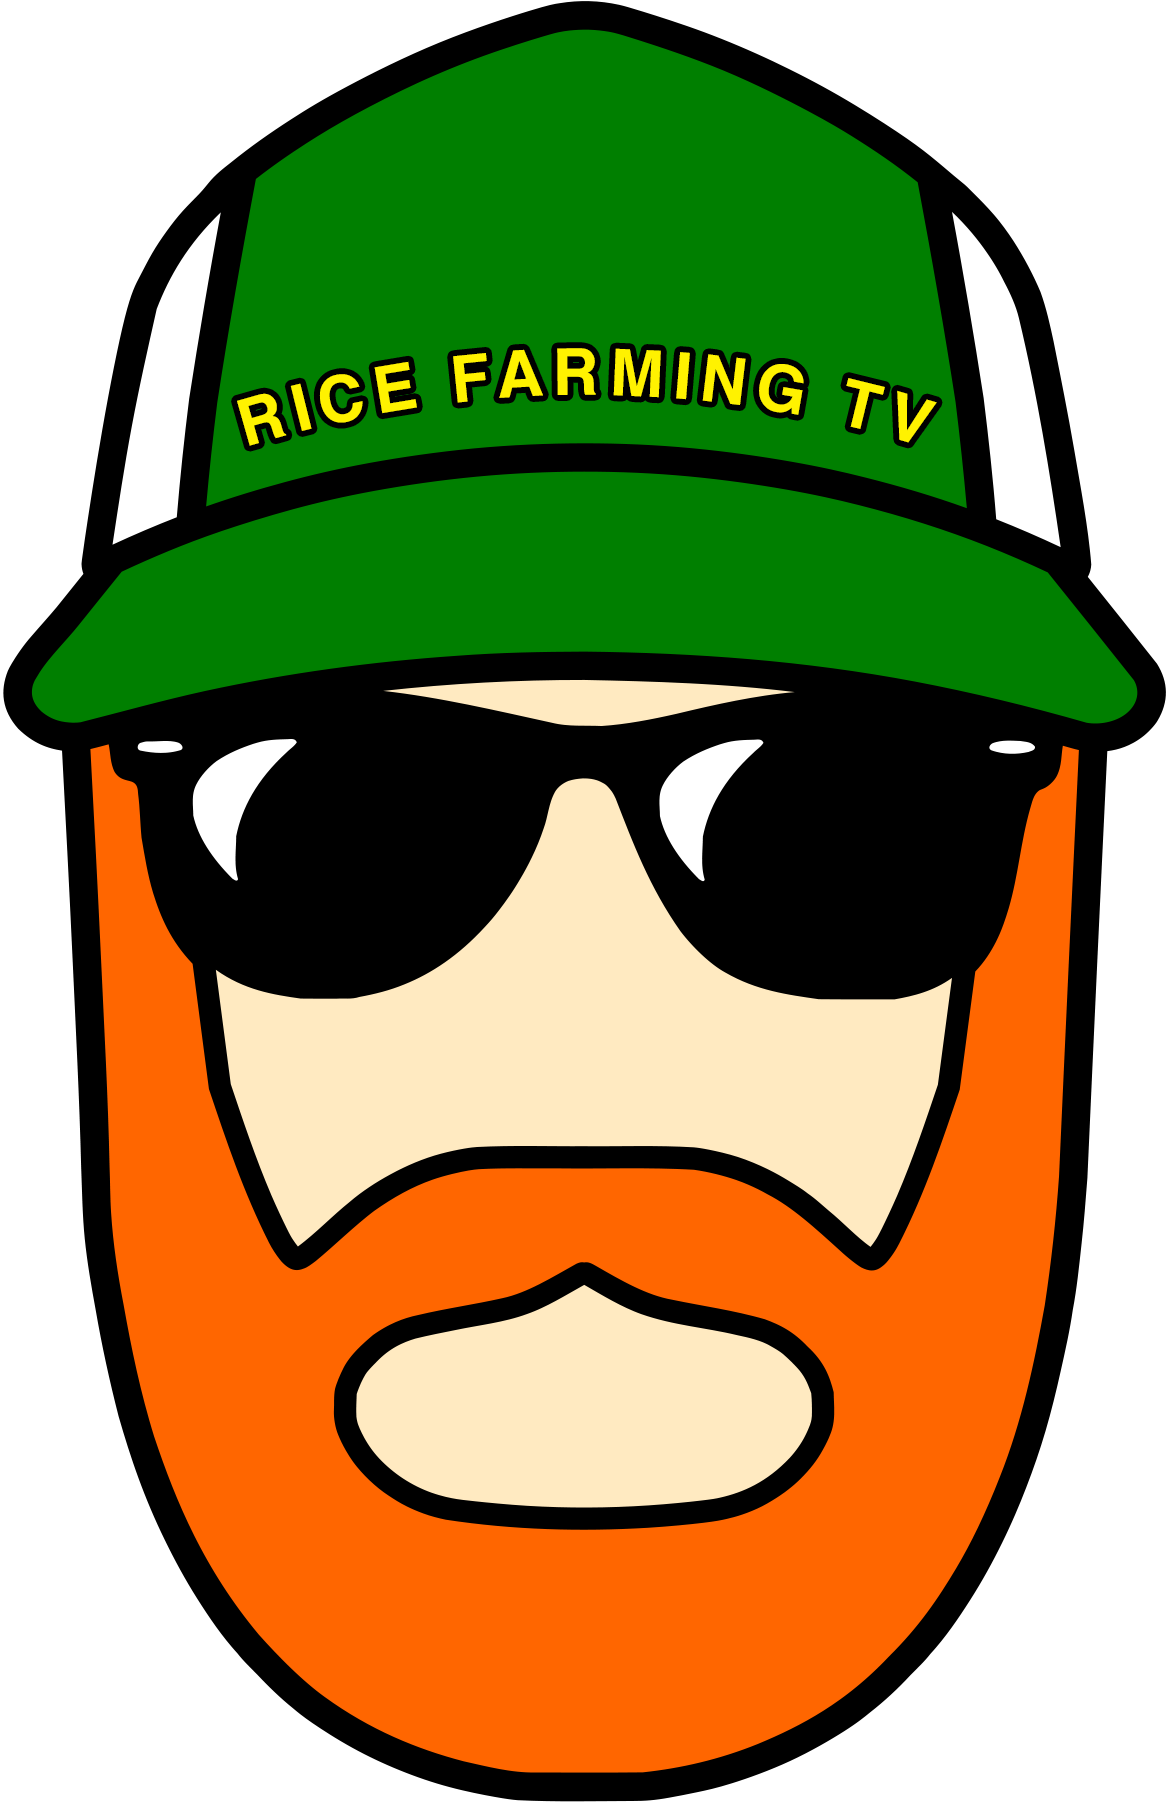 Farmers clipart rice farmer. Index of wp content